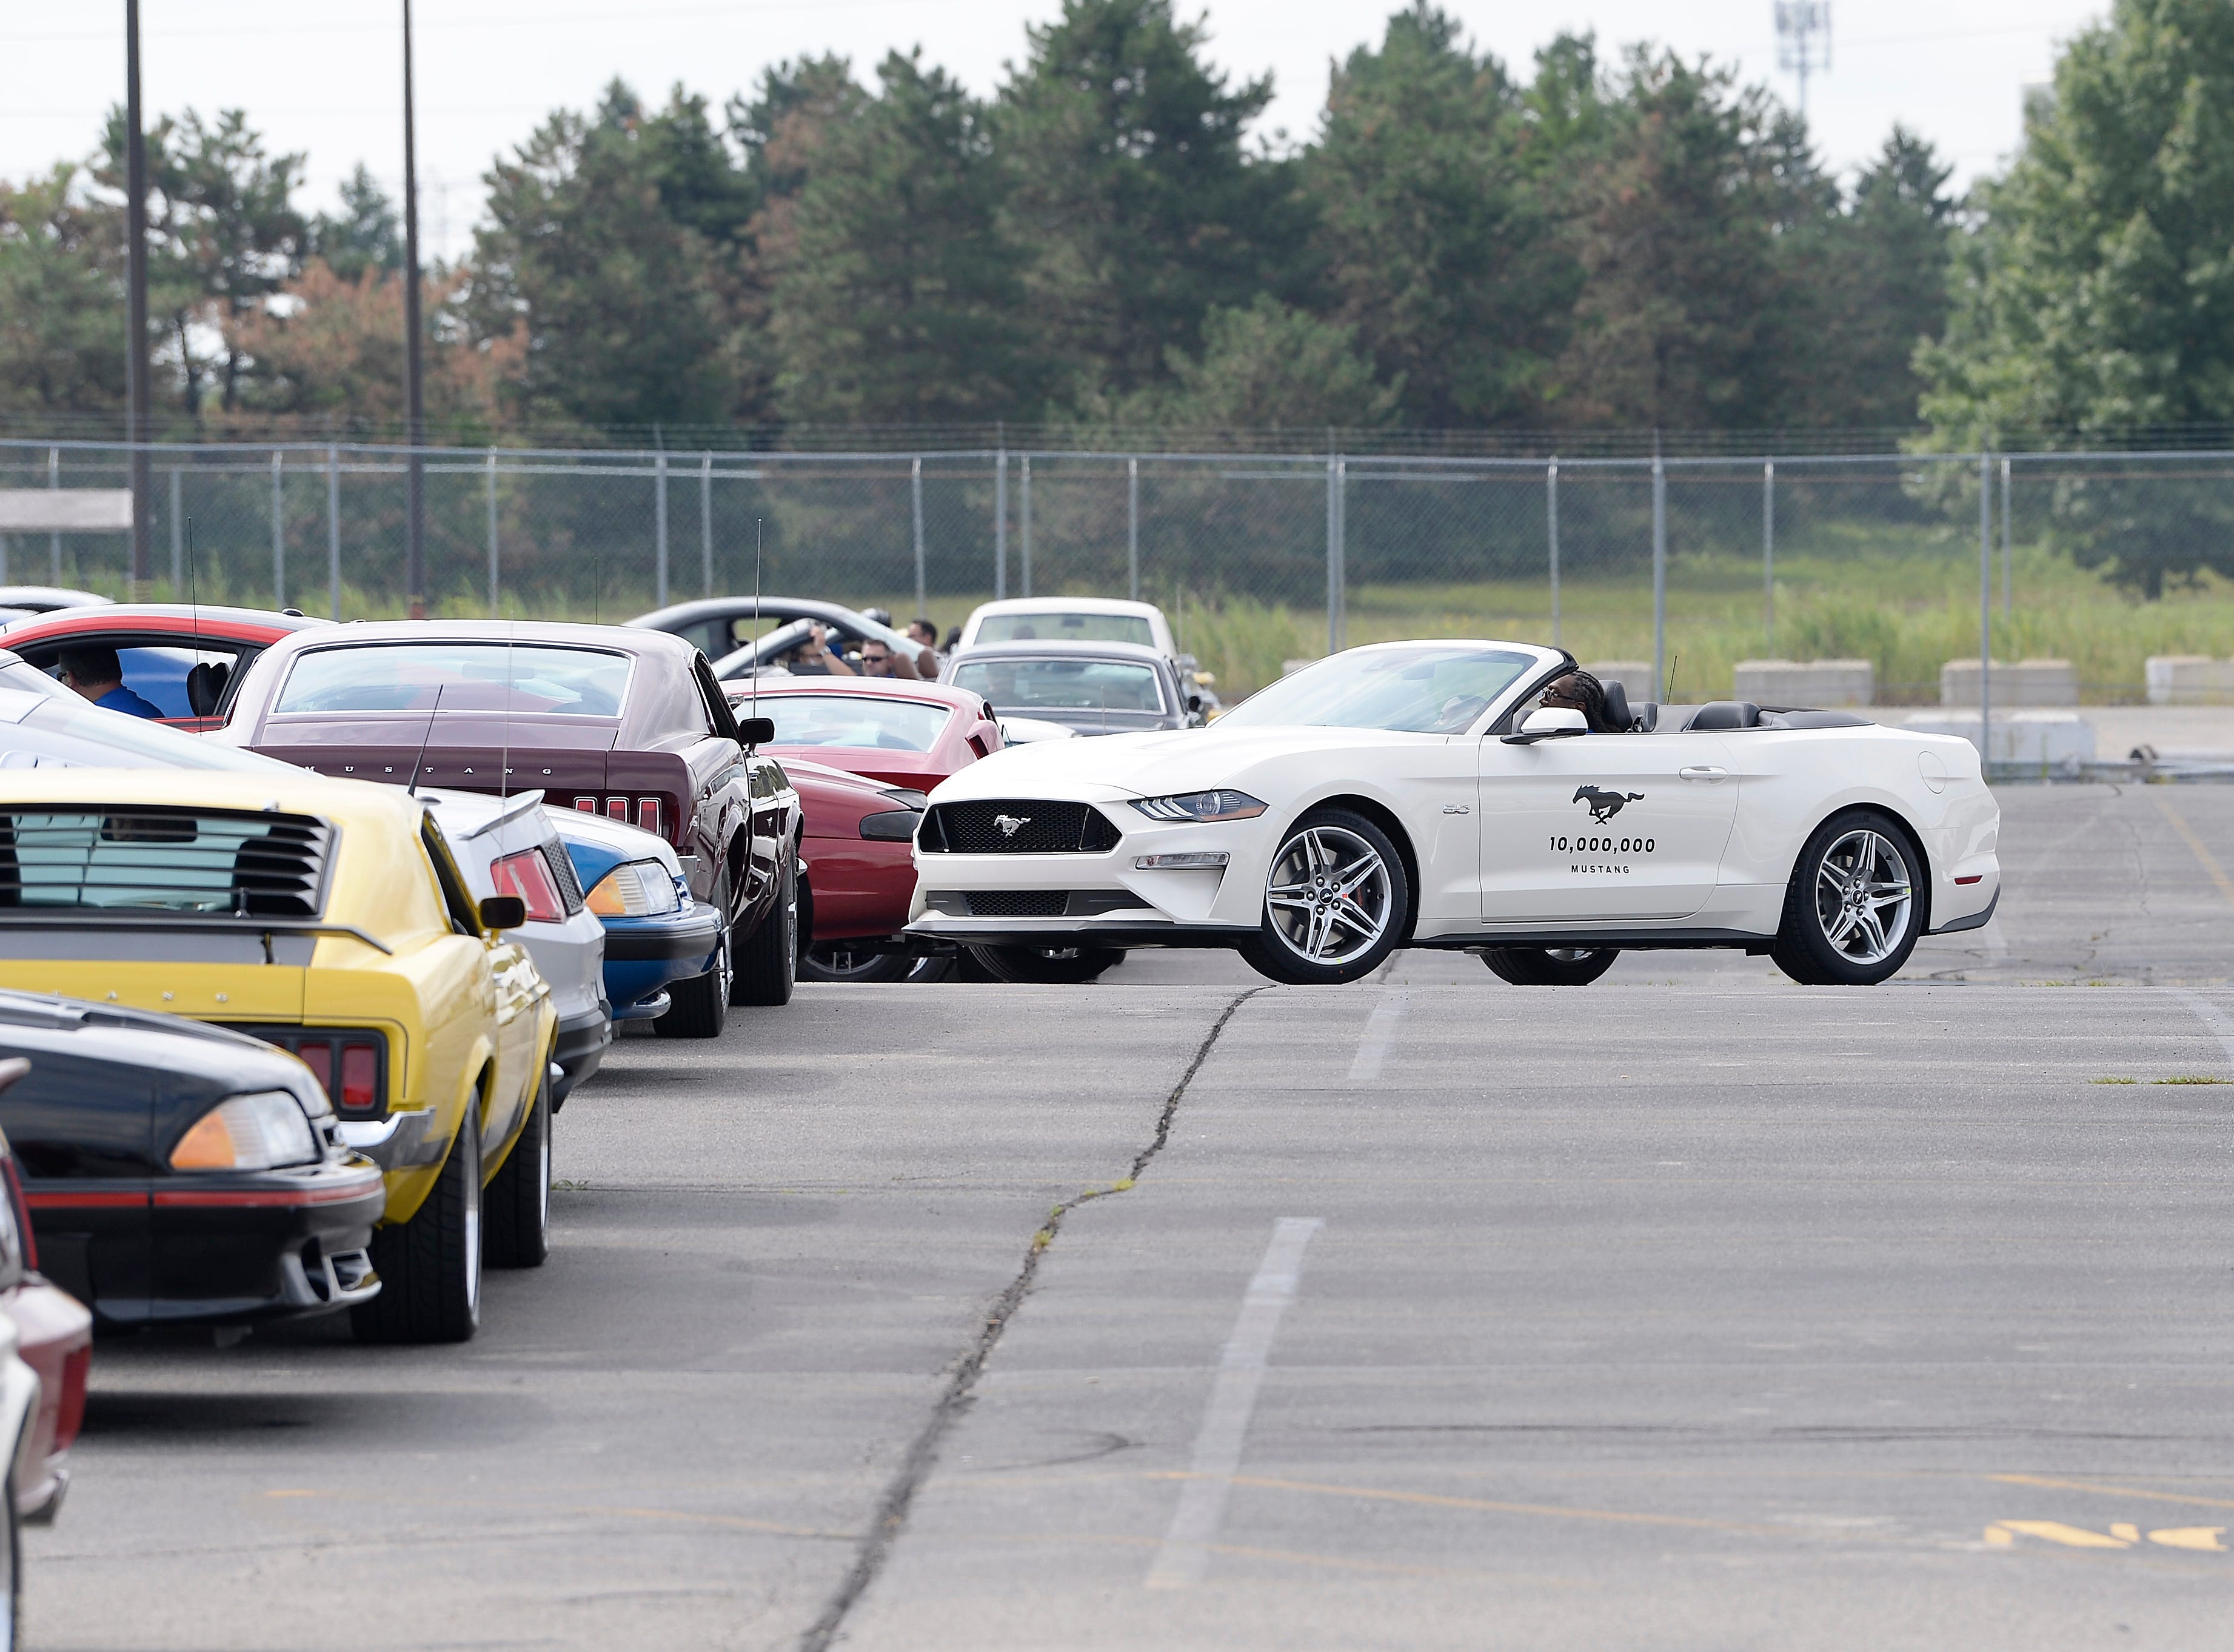 The 10 millionth Mustang enters the gate at the Flat Rock plant to join the other Mustangs to make a formation spelling out 10,000, 000.